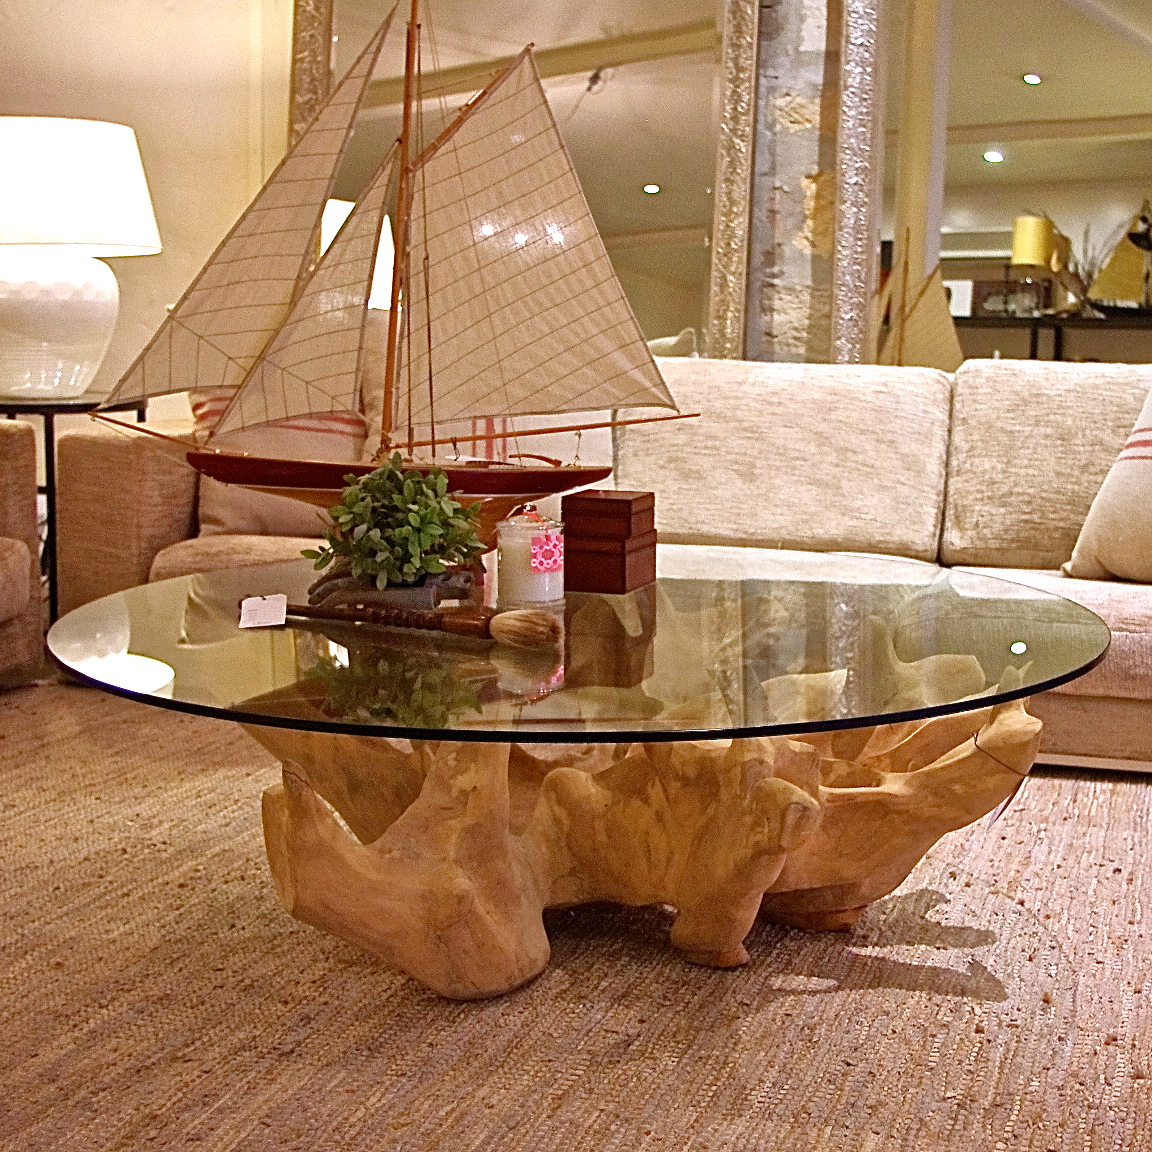 Tree-Trunk-Coffee-Table-With-Glass-Top-Walmart-Tables-Elegant-With-Pictures-Of-Walmart-Tables-Interior-In (Image 9 of 9)